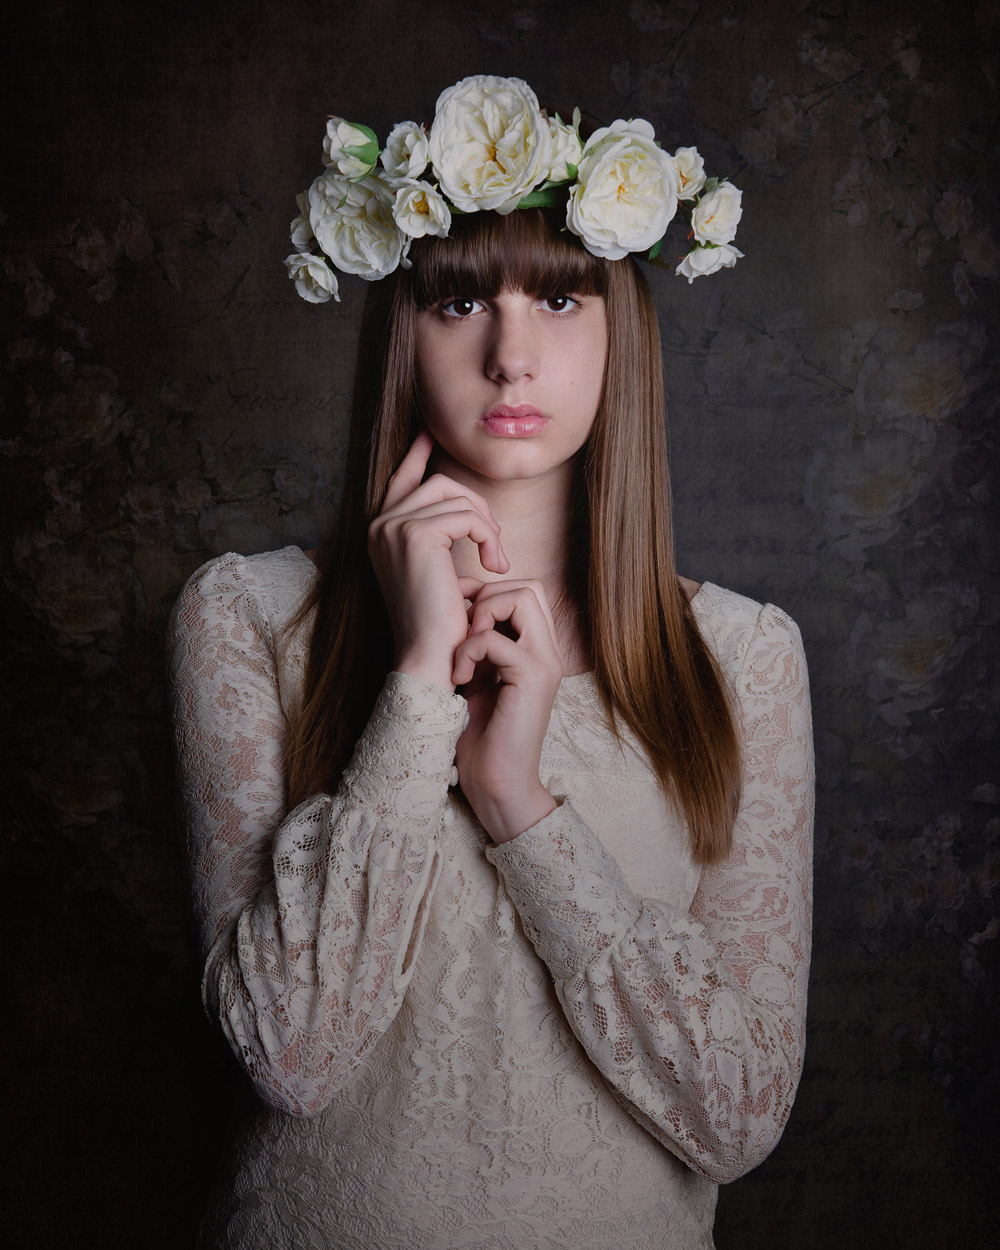 child teen model lace dress fine art award winning photographer Nottingham